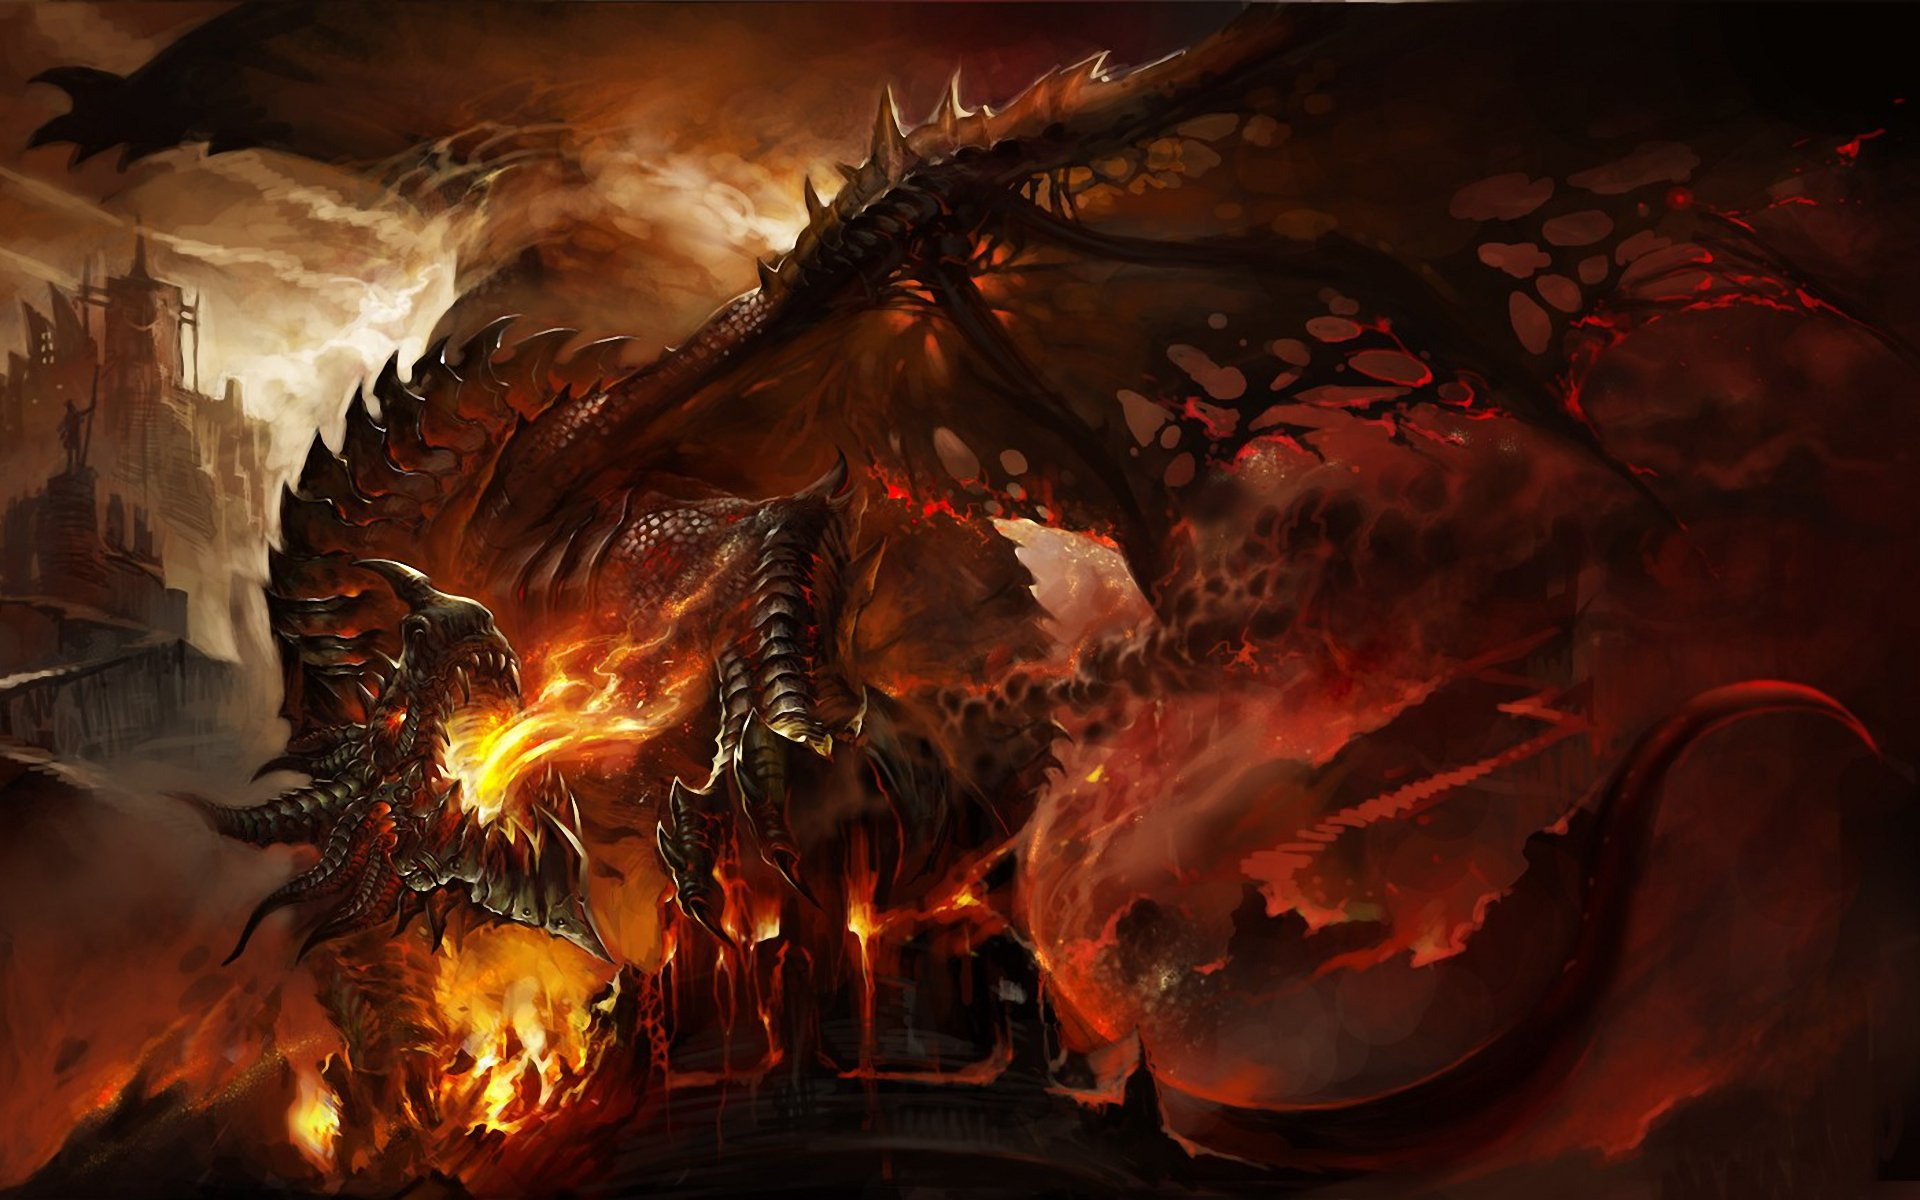 Epic Dragon Backgrounds wallpaper wallpaper hd background desktop 1920x1200